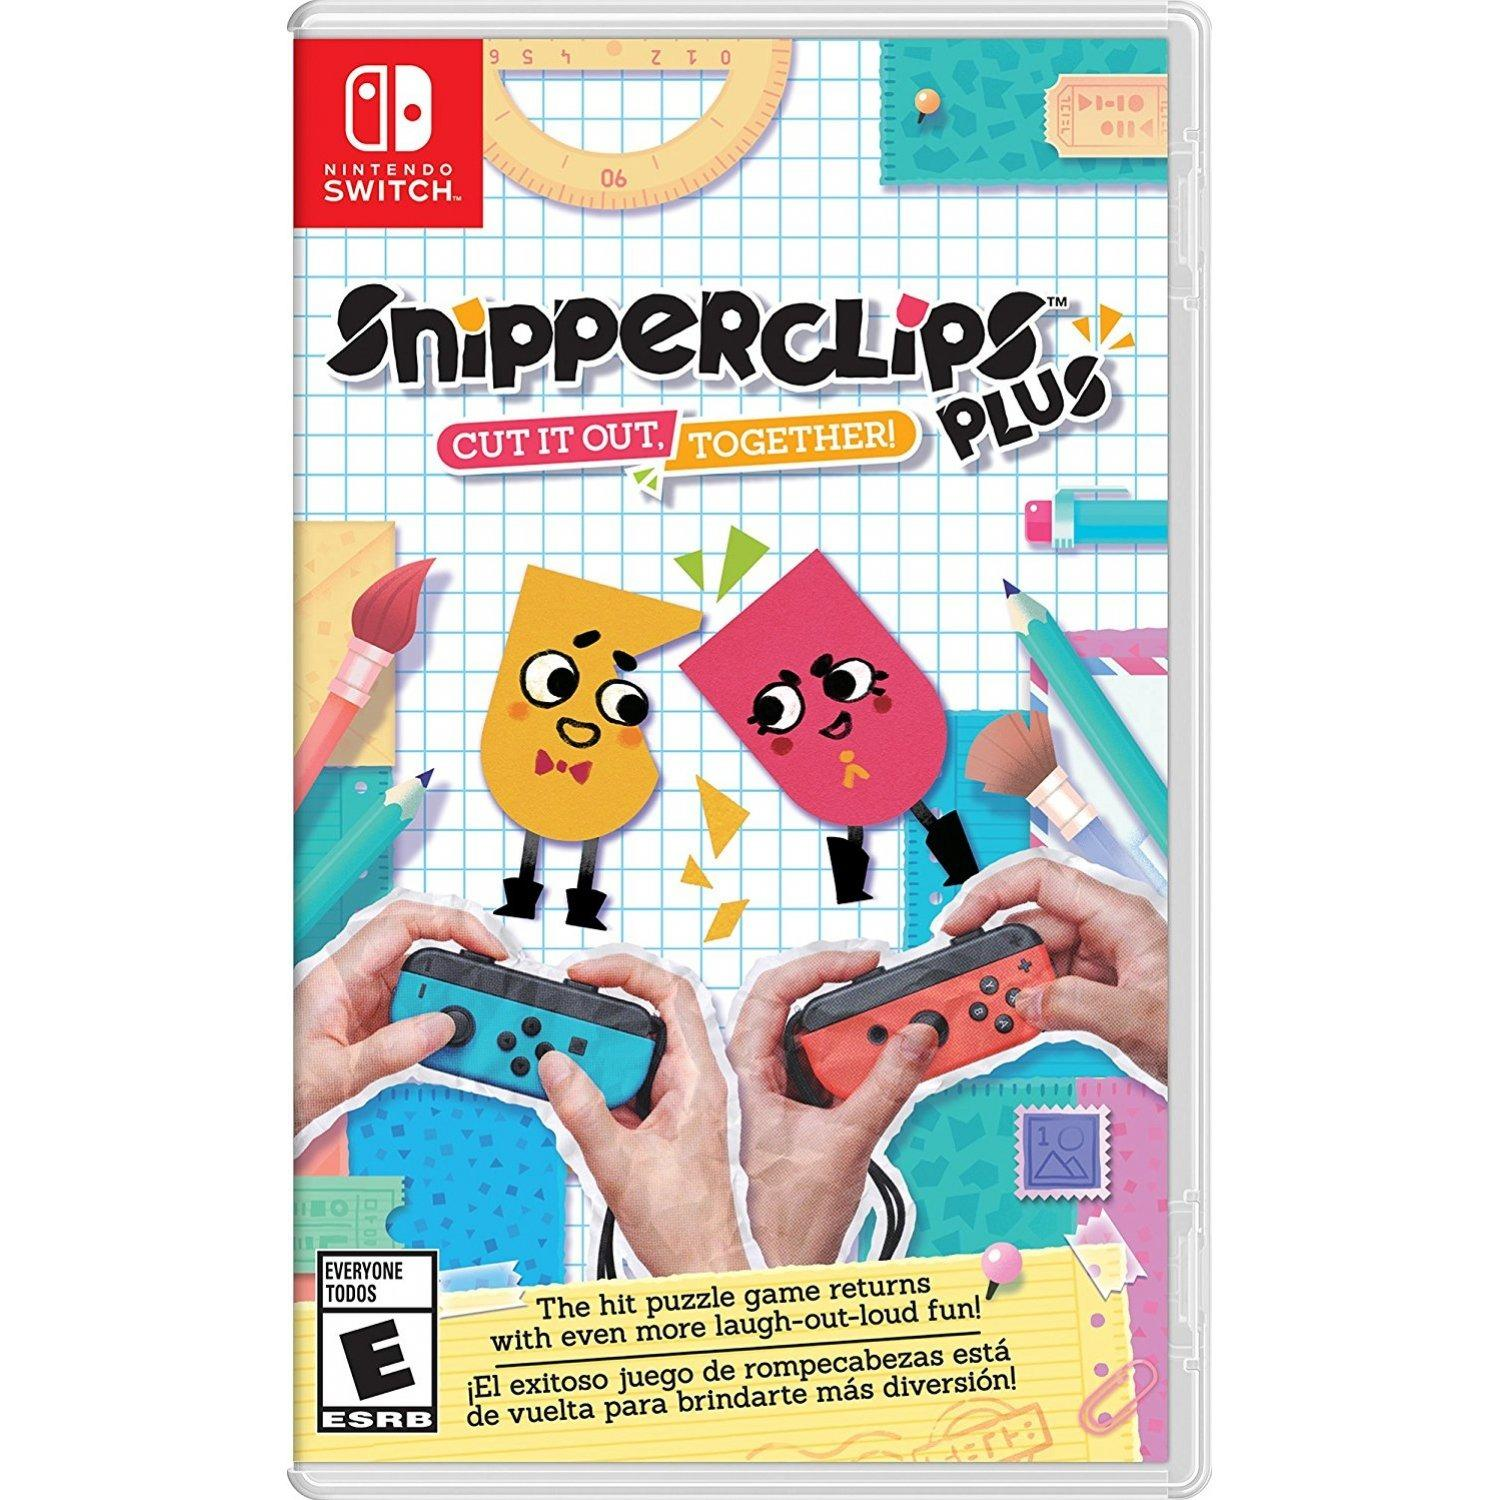 Retail Price Nintendo Switch Snipperclips Plus Cut It Out Together English